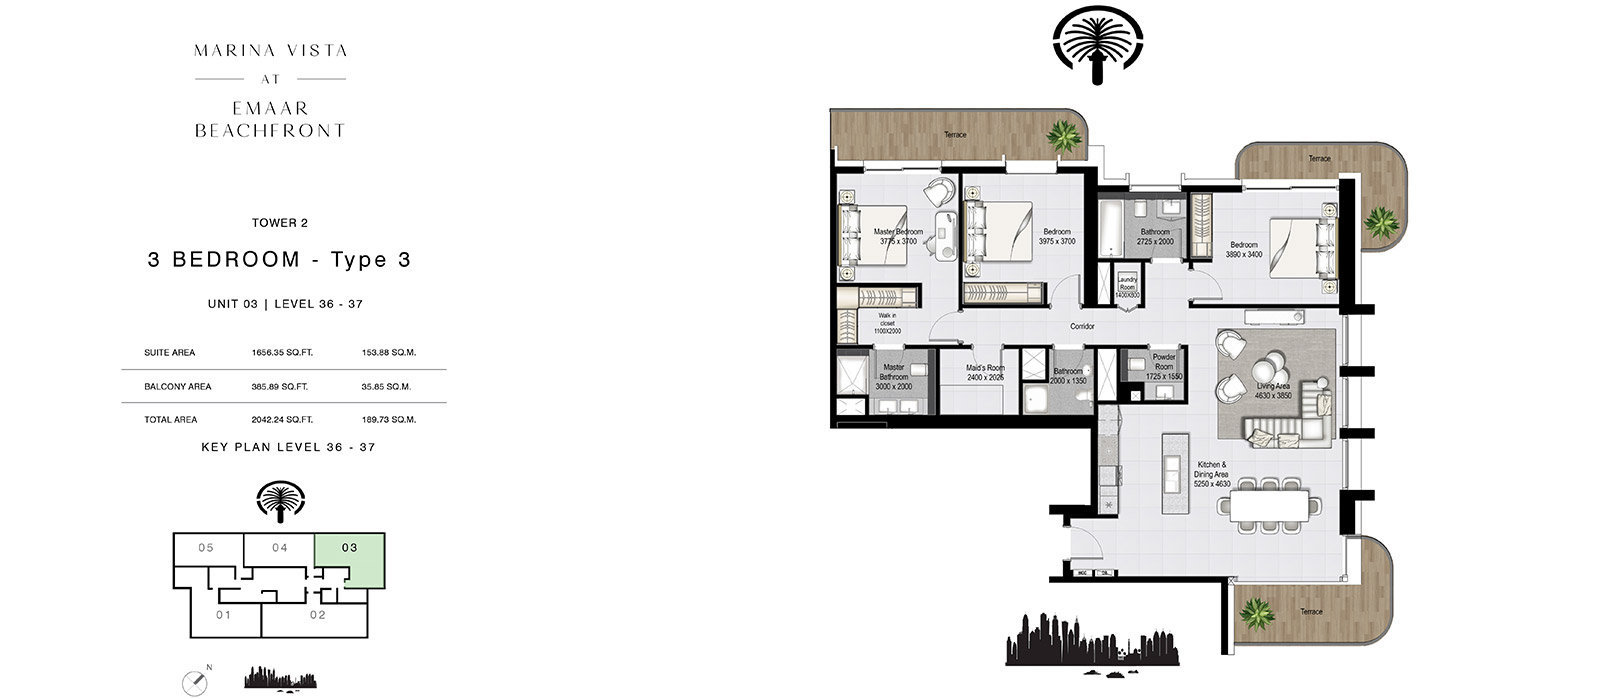 3 Bedroom Tower 2, Type 3, Size 2043.24 sq.ft.